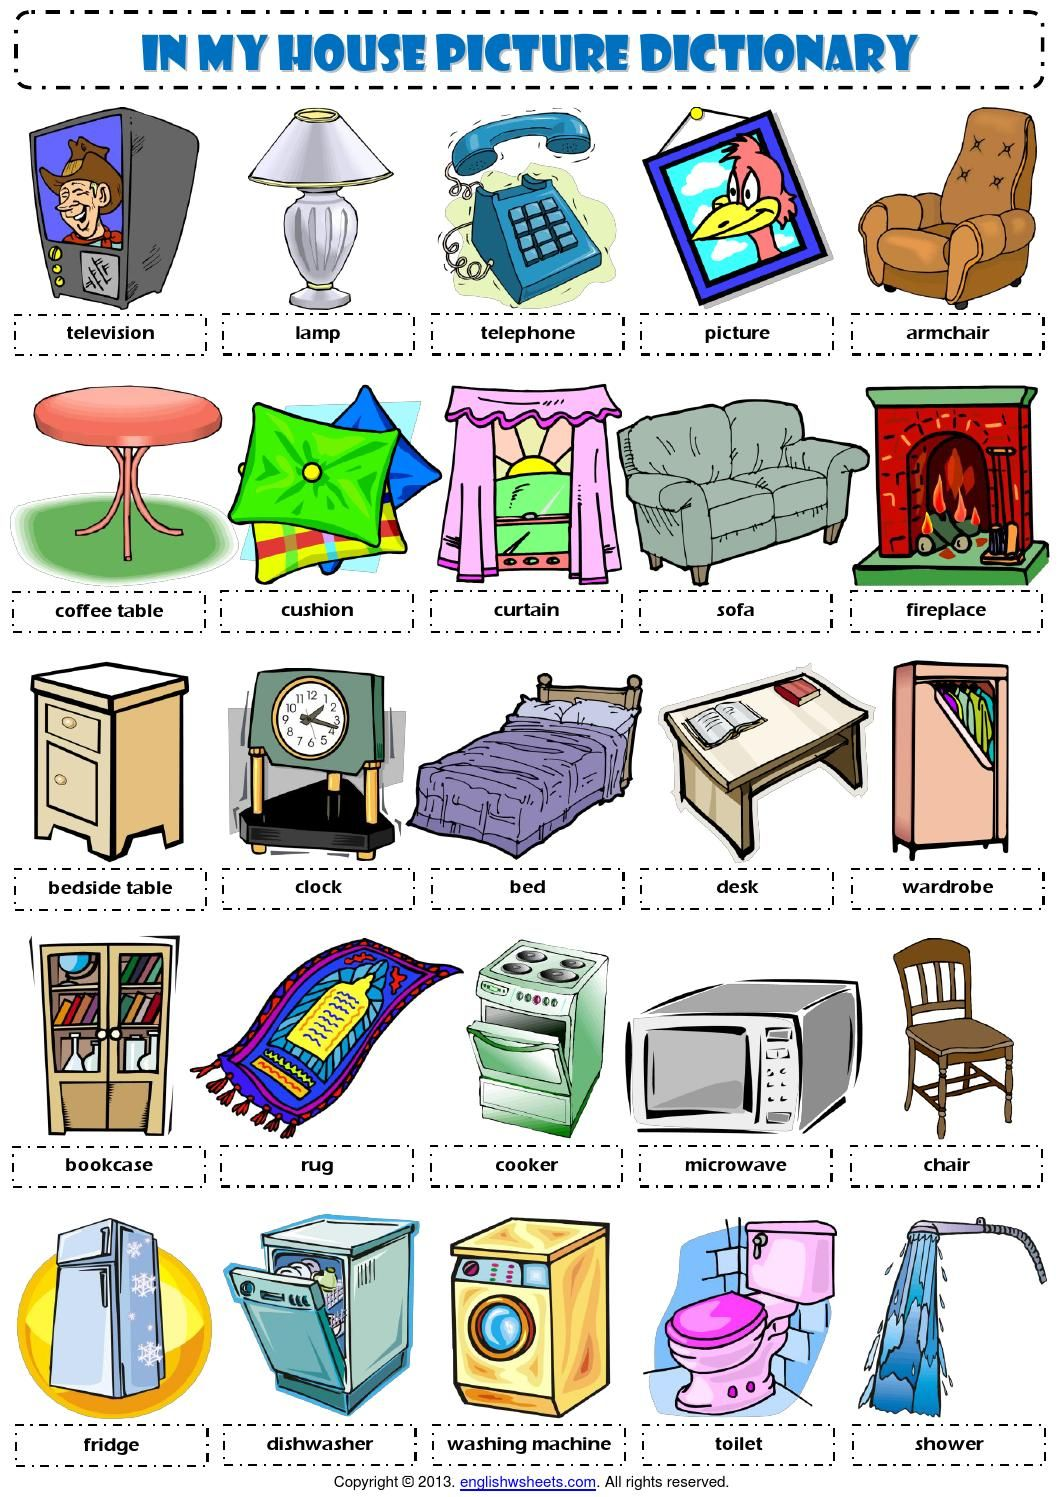 English Vocabulary In My House Furniture English